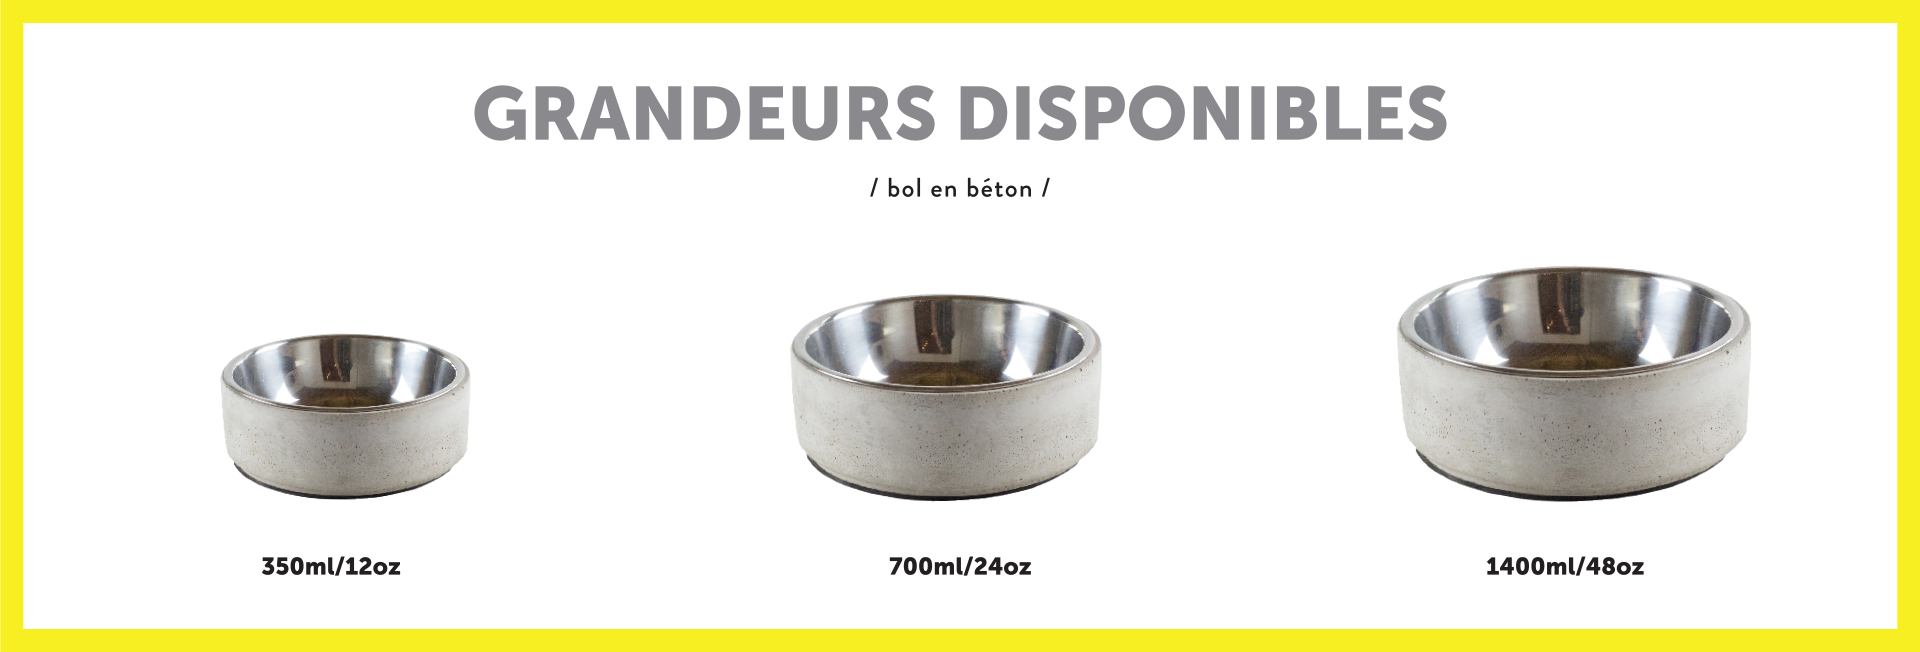 dimensions-concrete-bowl-for-dogs-french